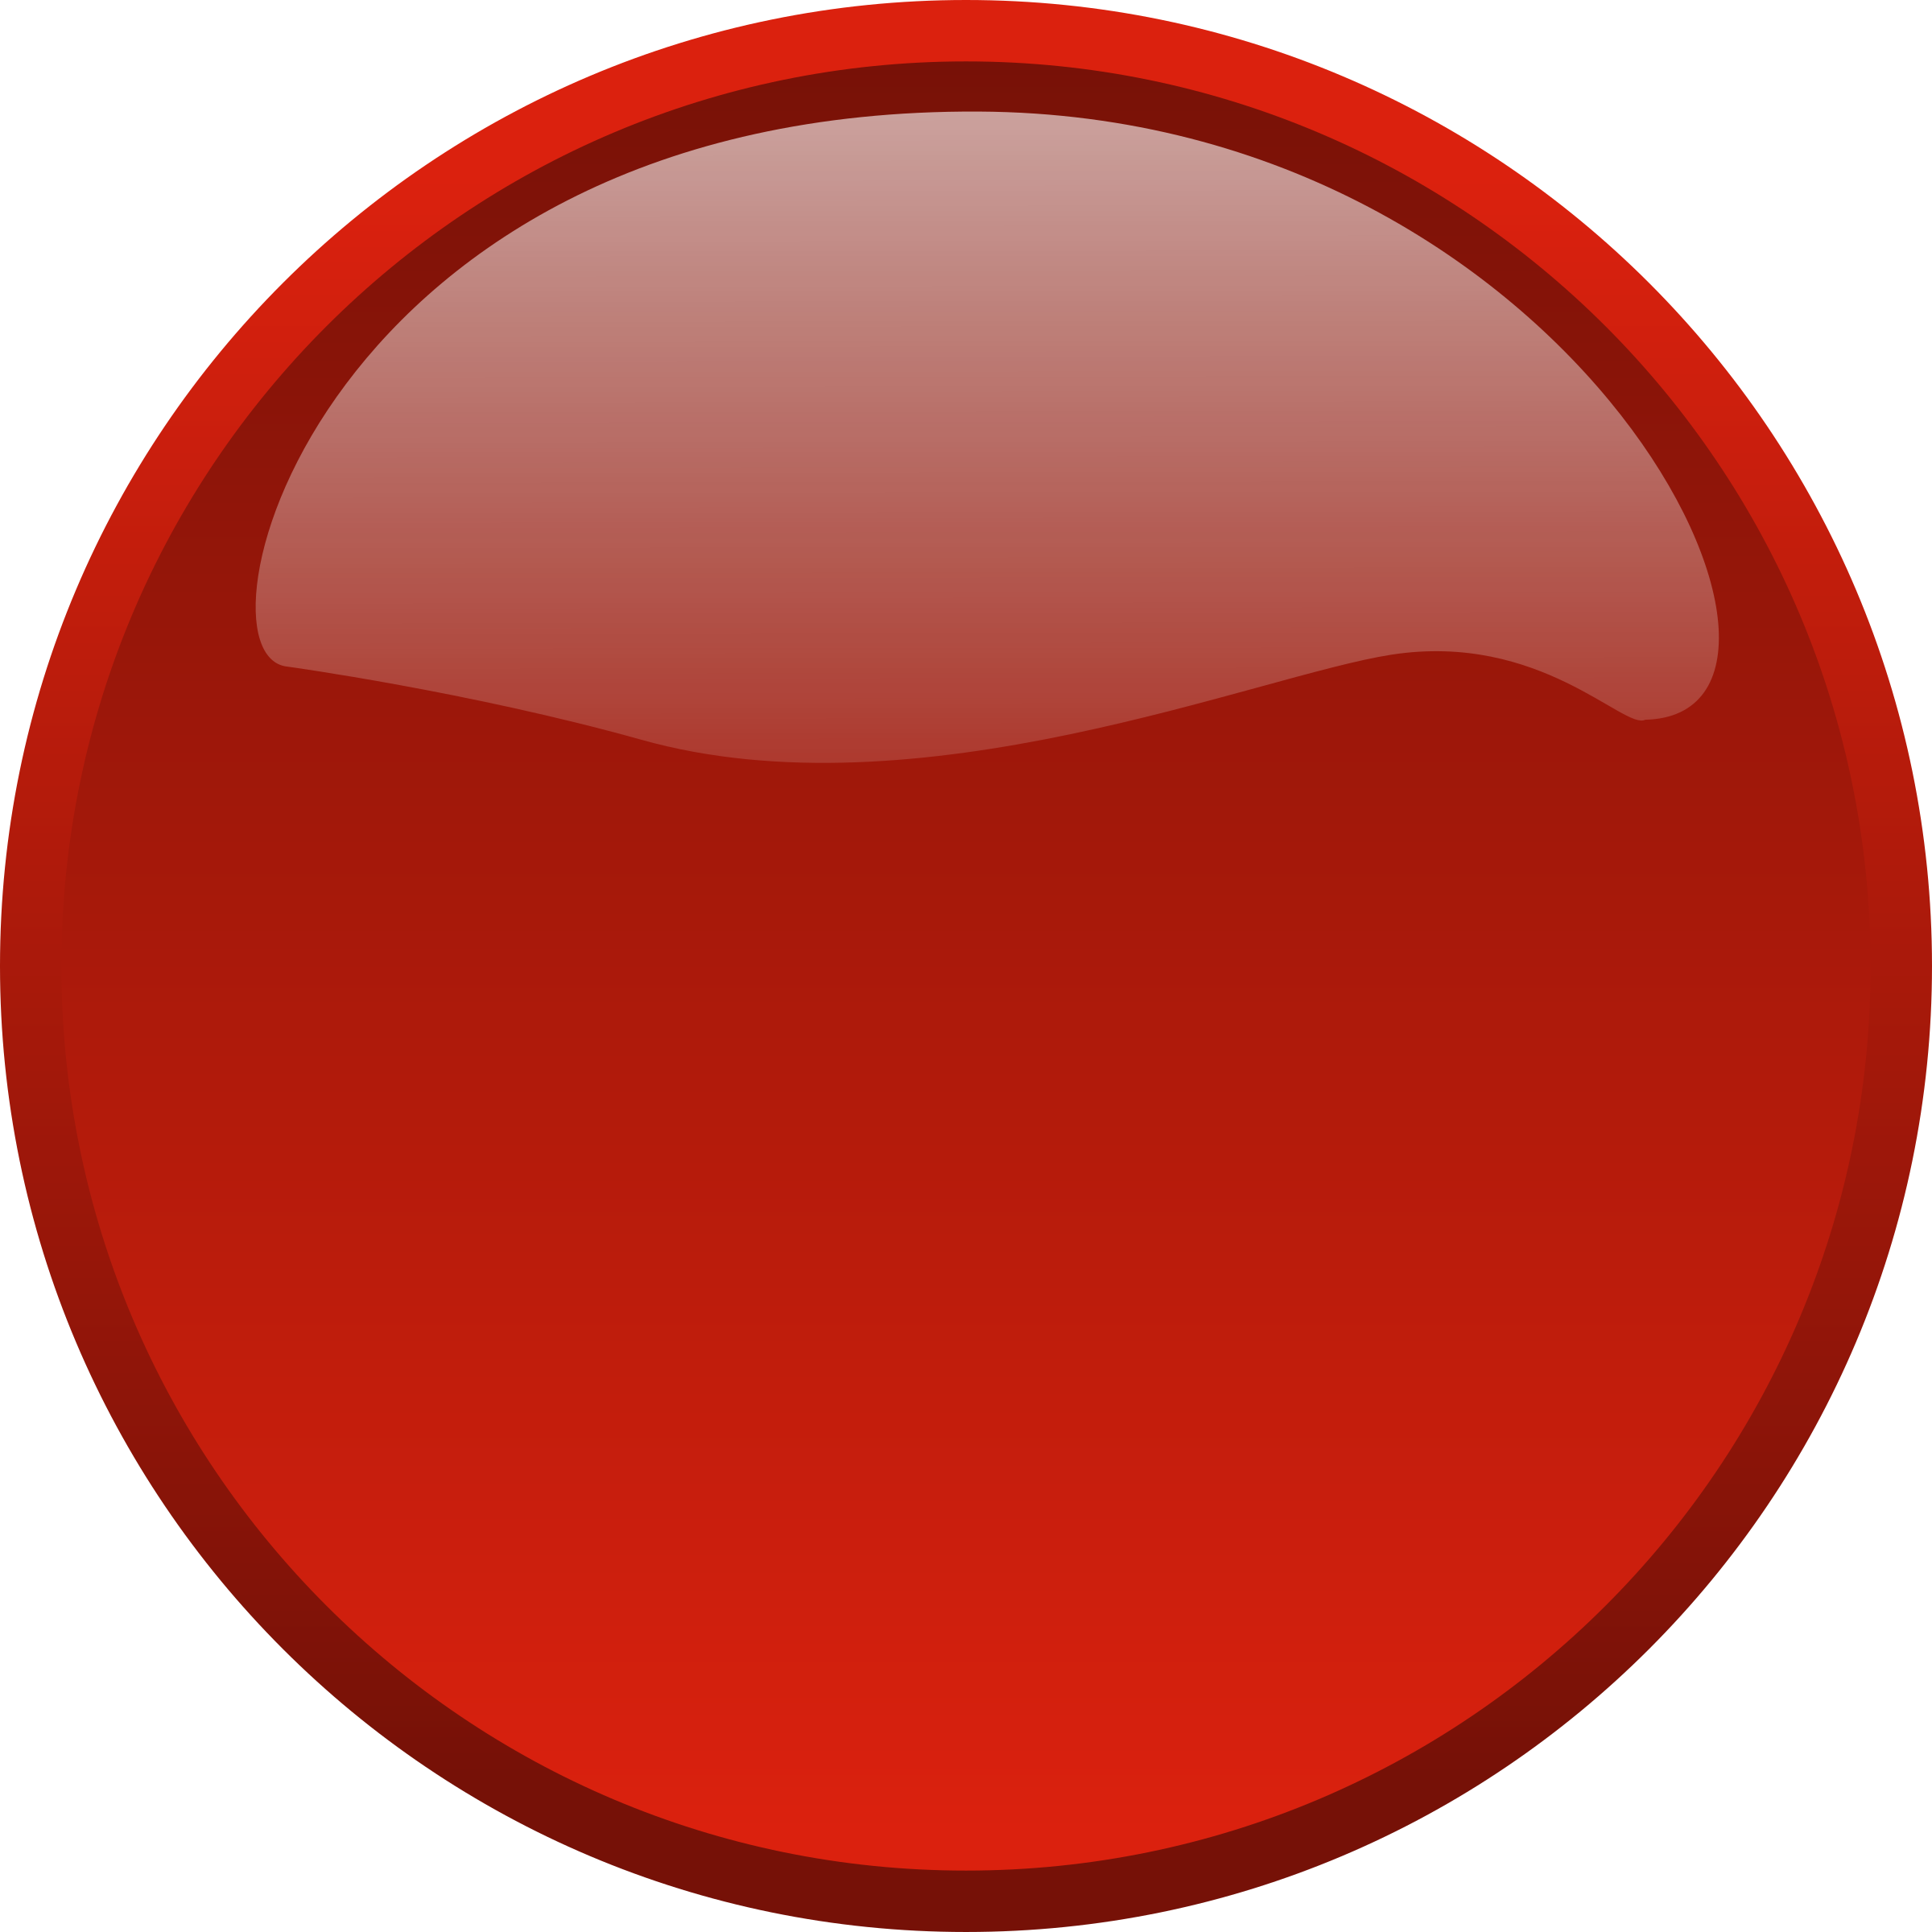 Button Red by bpcomp